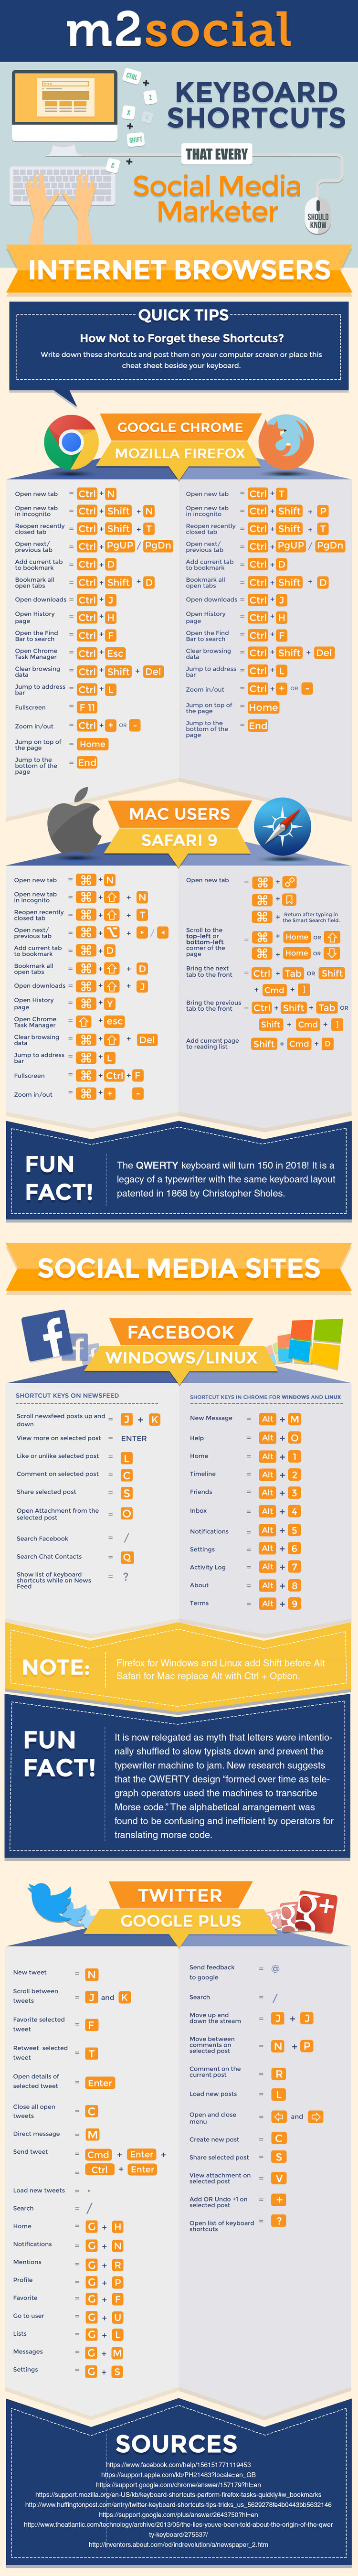 Keyboard Shortcuts Every Social Media Marketer Should Know